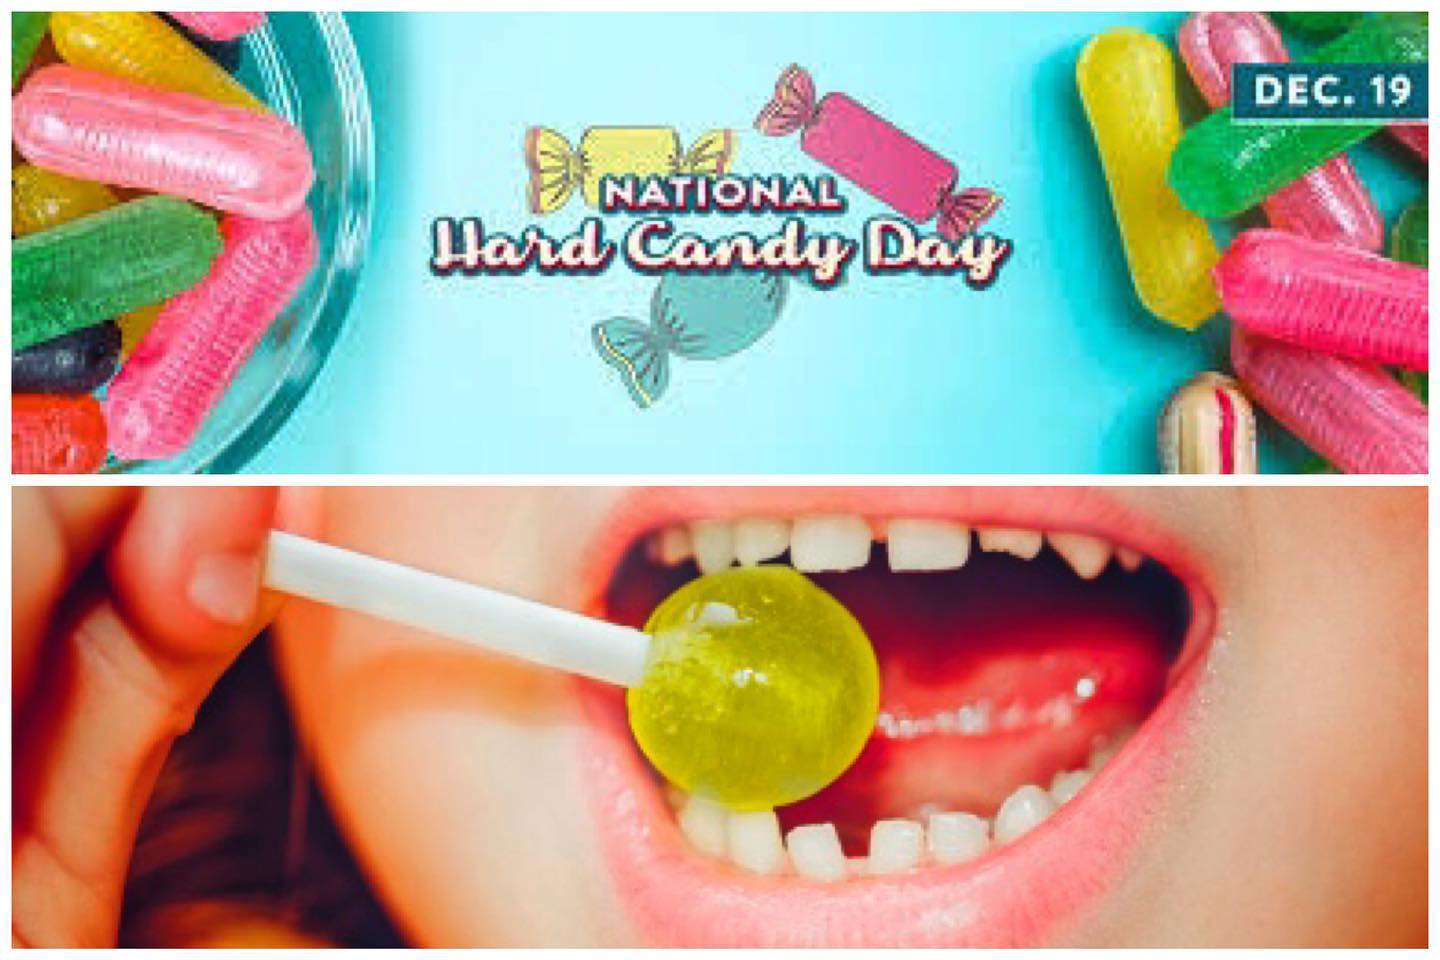 National Hard Candy Day Wishes Awesome Images, Pictures, Photos, Wallpapers